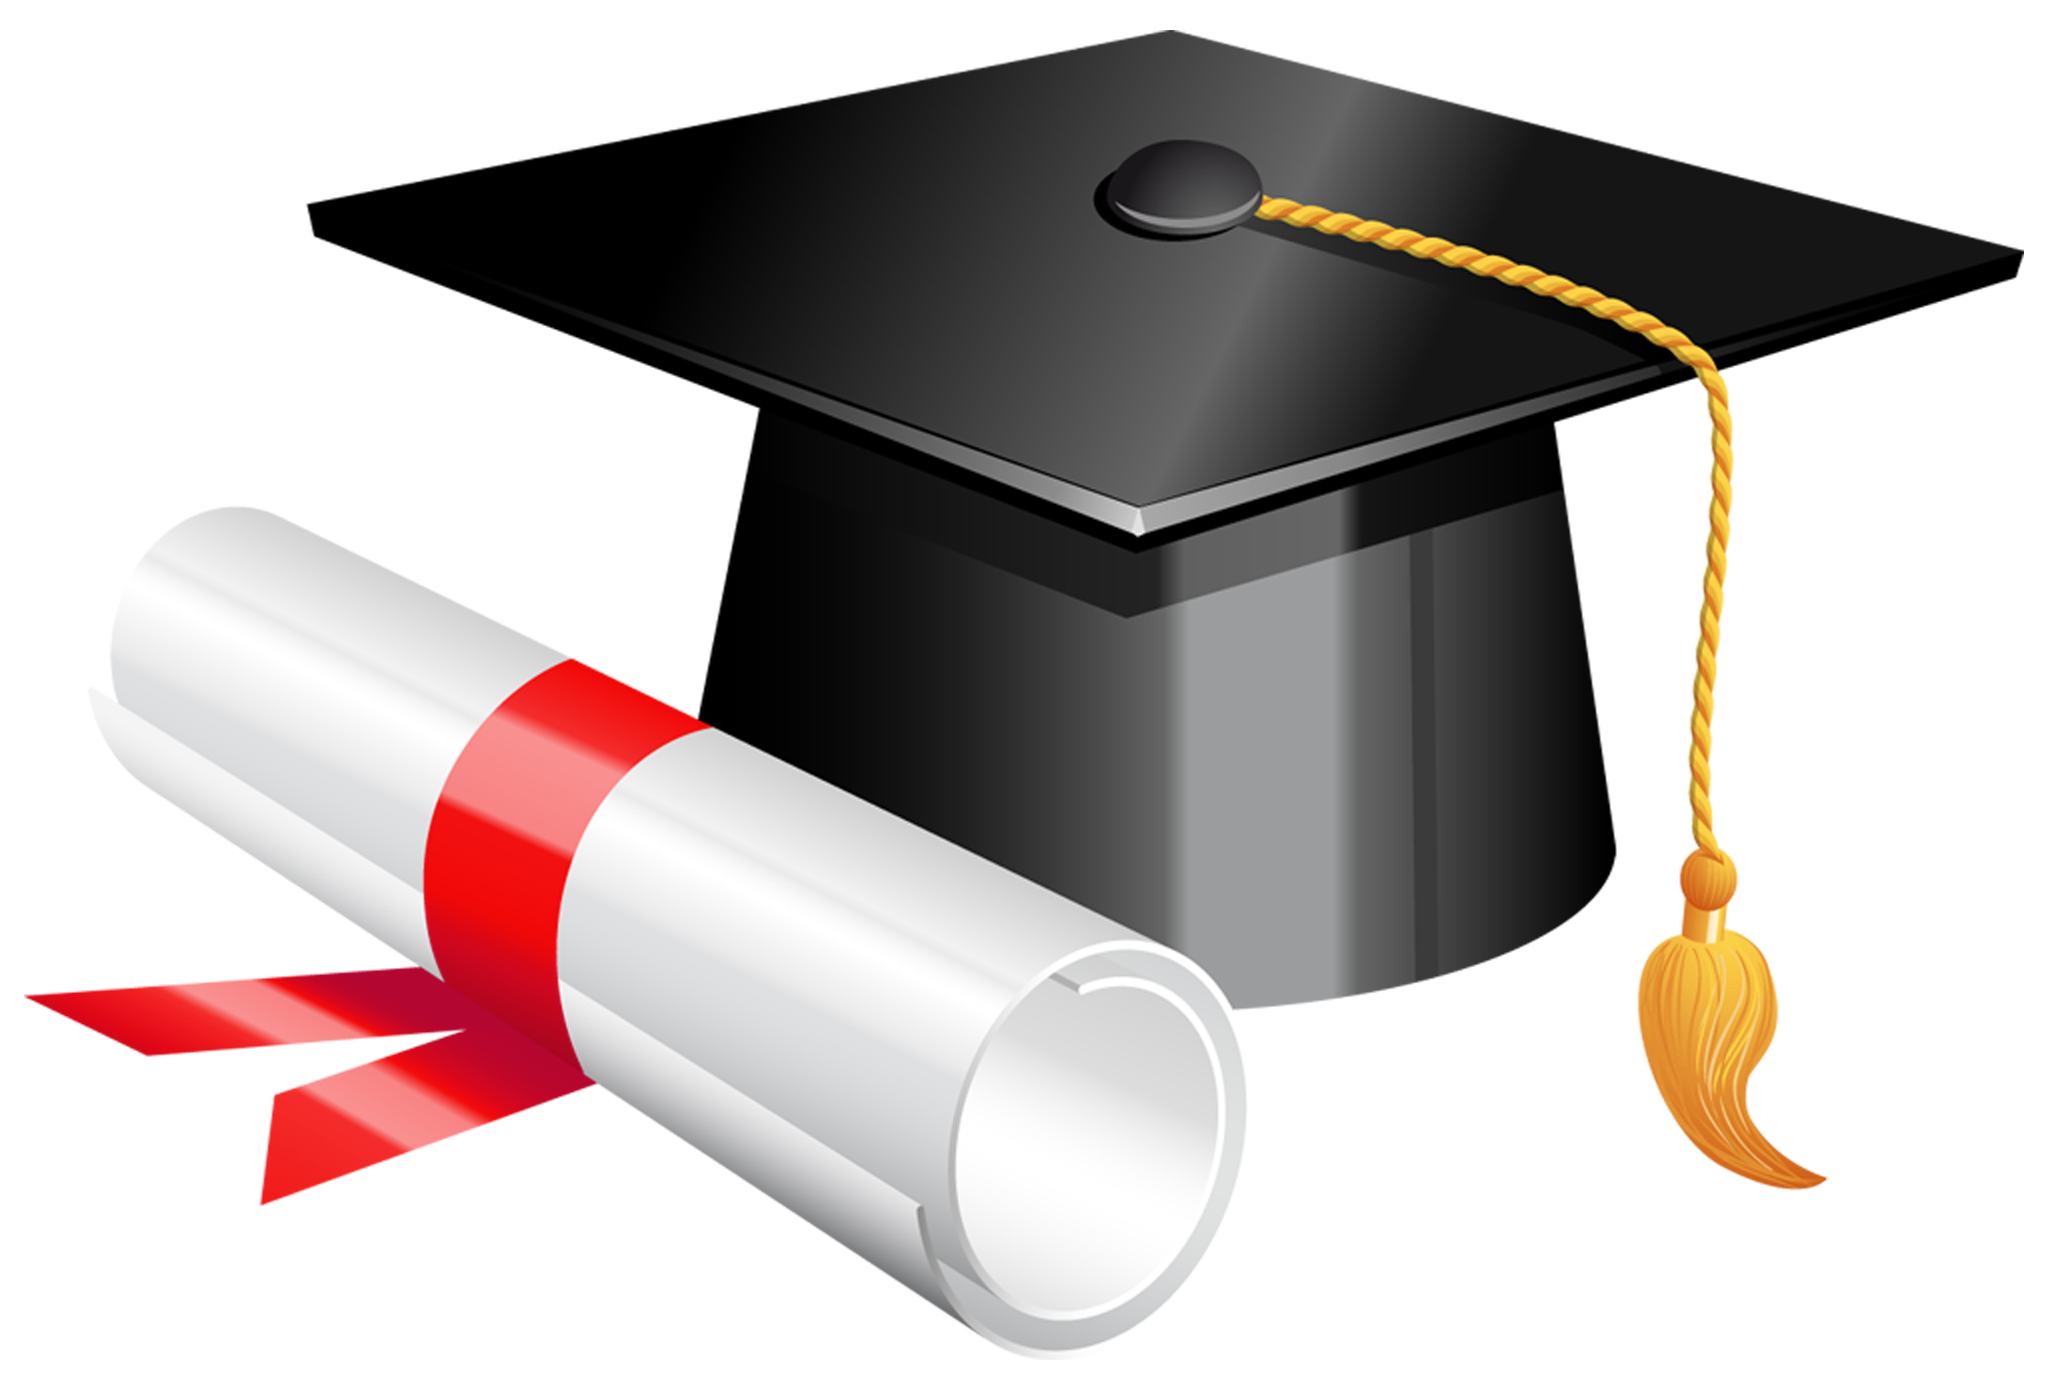 Diploma clipart grad. Graduation cap and png